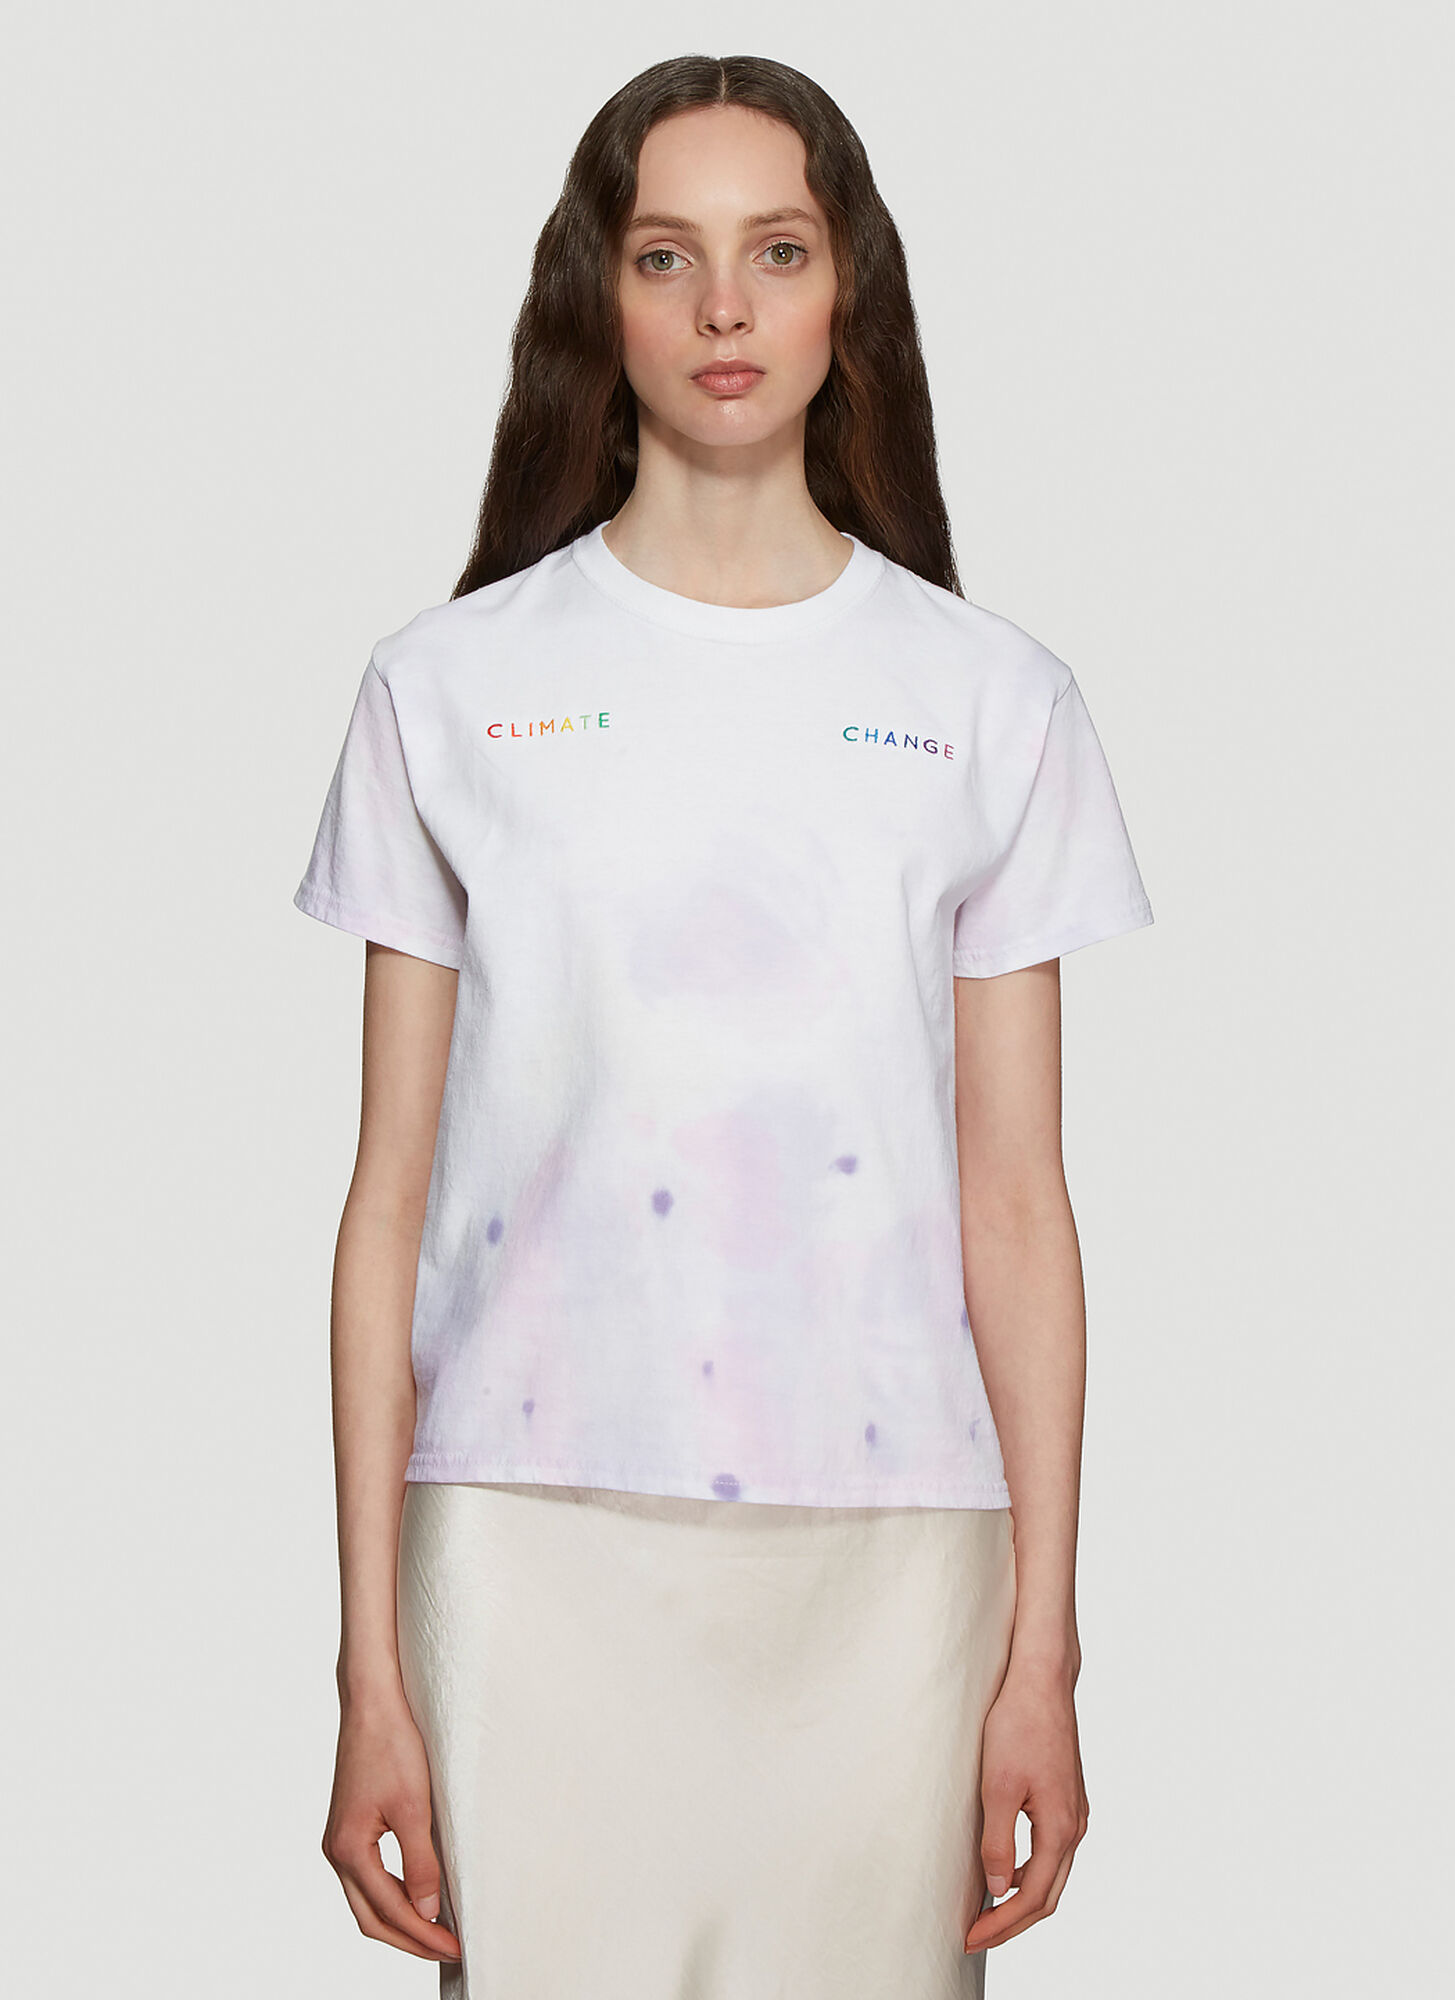 Collina Strada Climate Change Tie-Dye T-Shirt in White